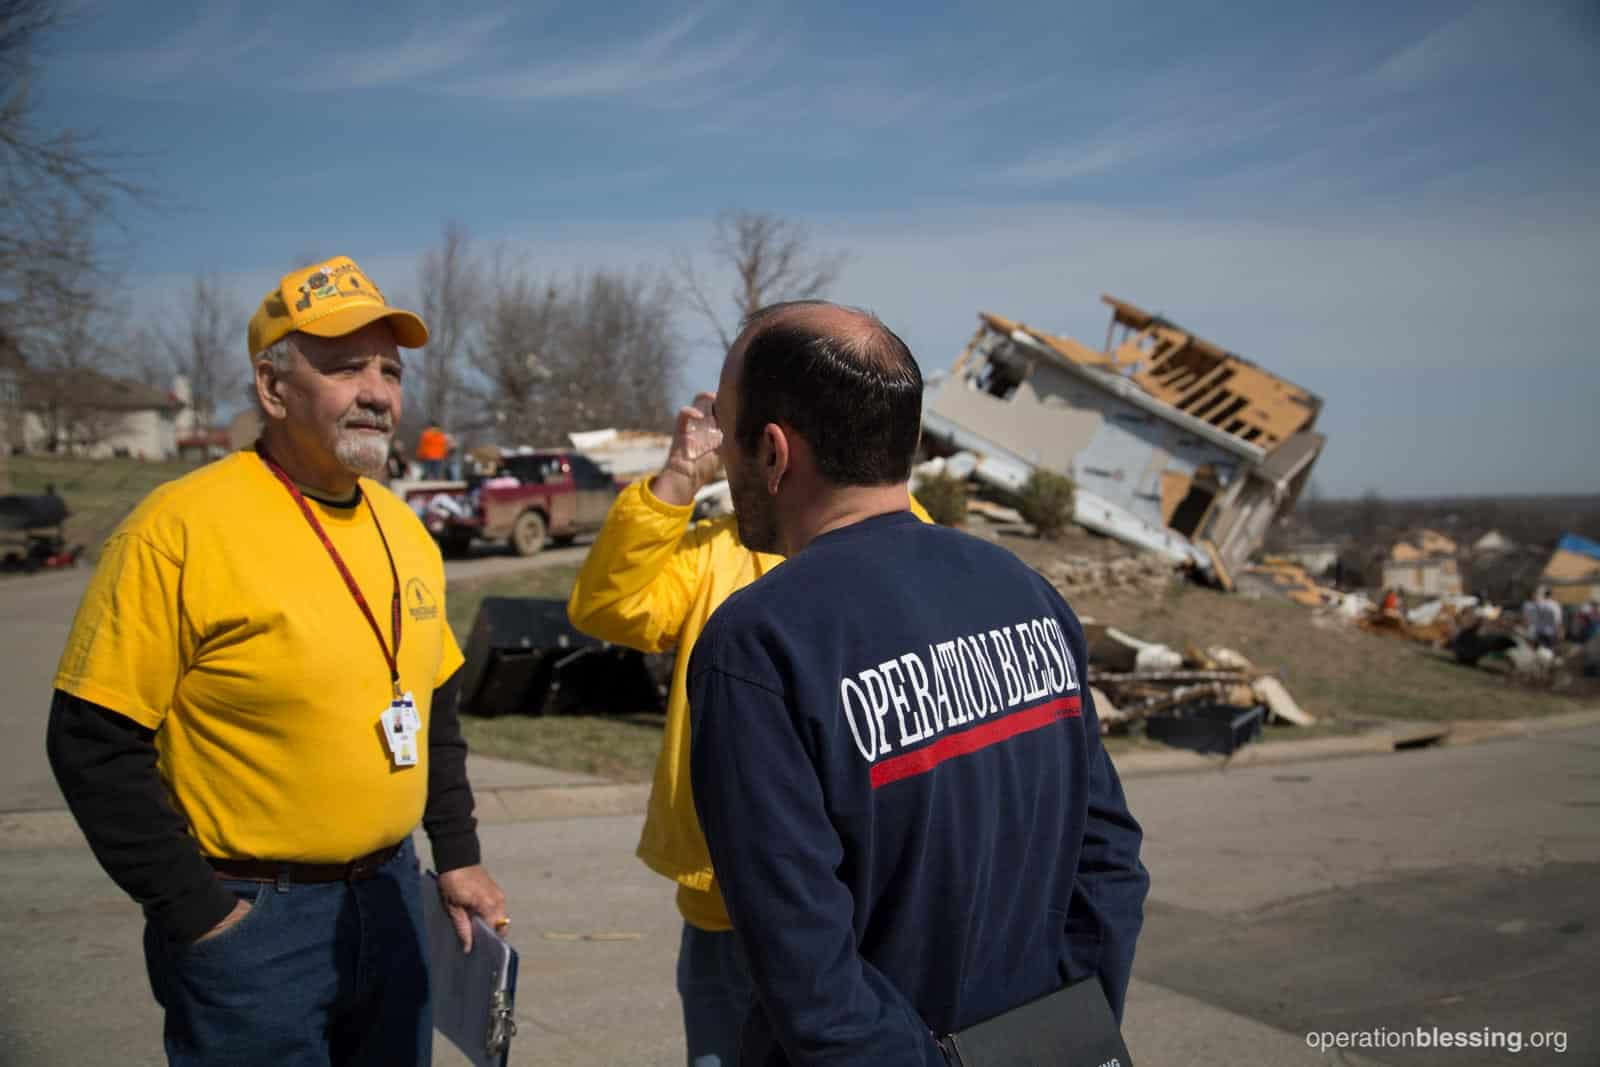 Operation Blessing's U.S. disaster relief team surveys the damage after a powerful tornado impacted the community of Oak Grove, Missouri.